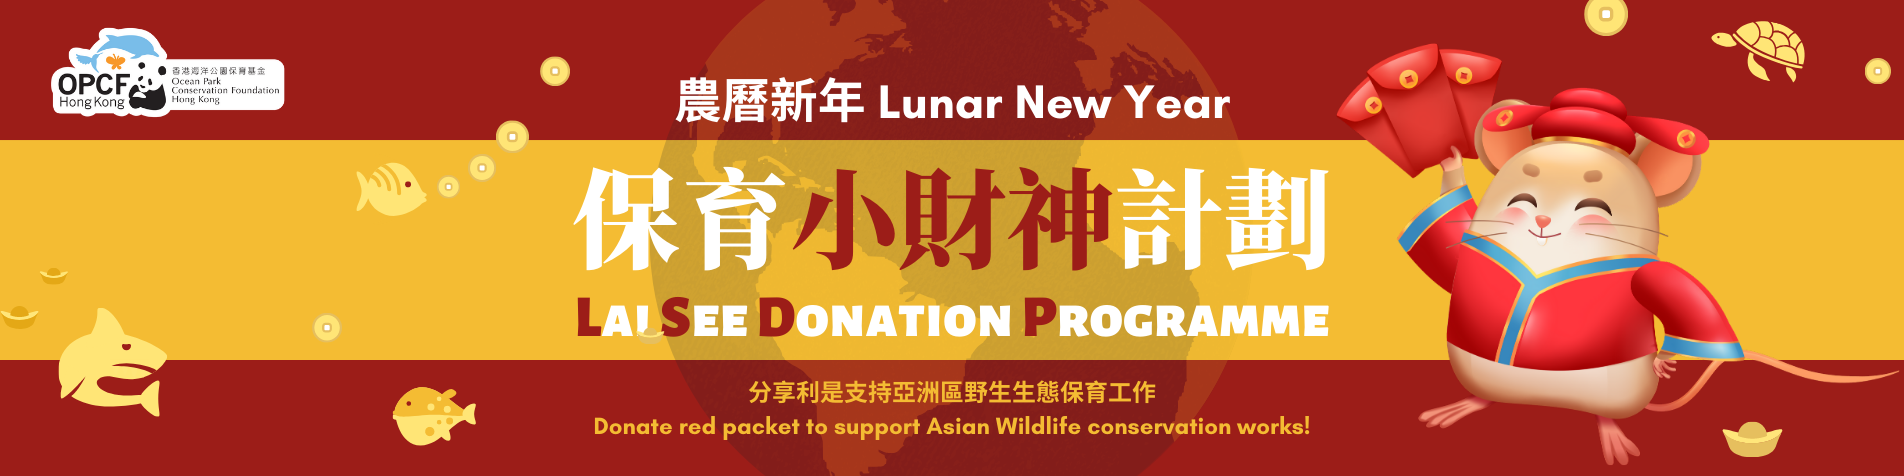 Ocean Park Conservation Foundation, Hong Kong - Lai See Donation Programme